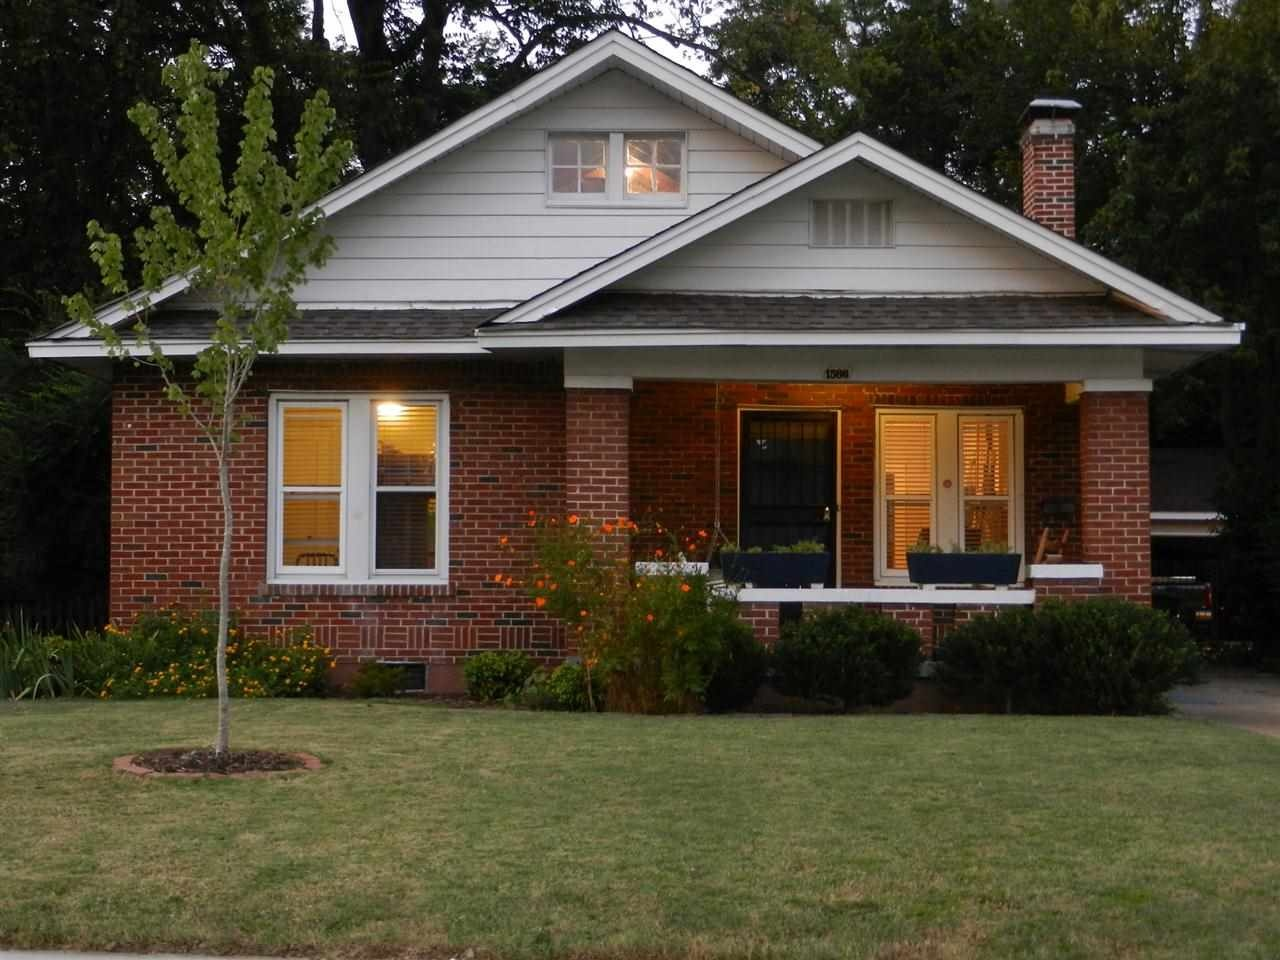 Homes On The Market For 200 000 Zillow Porchlight